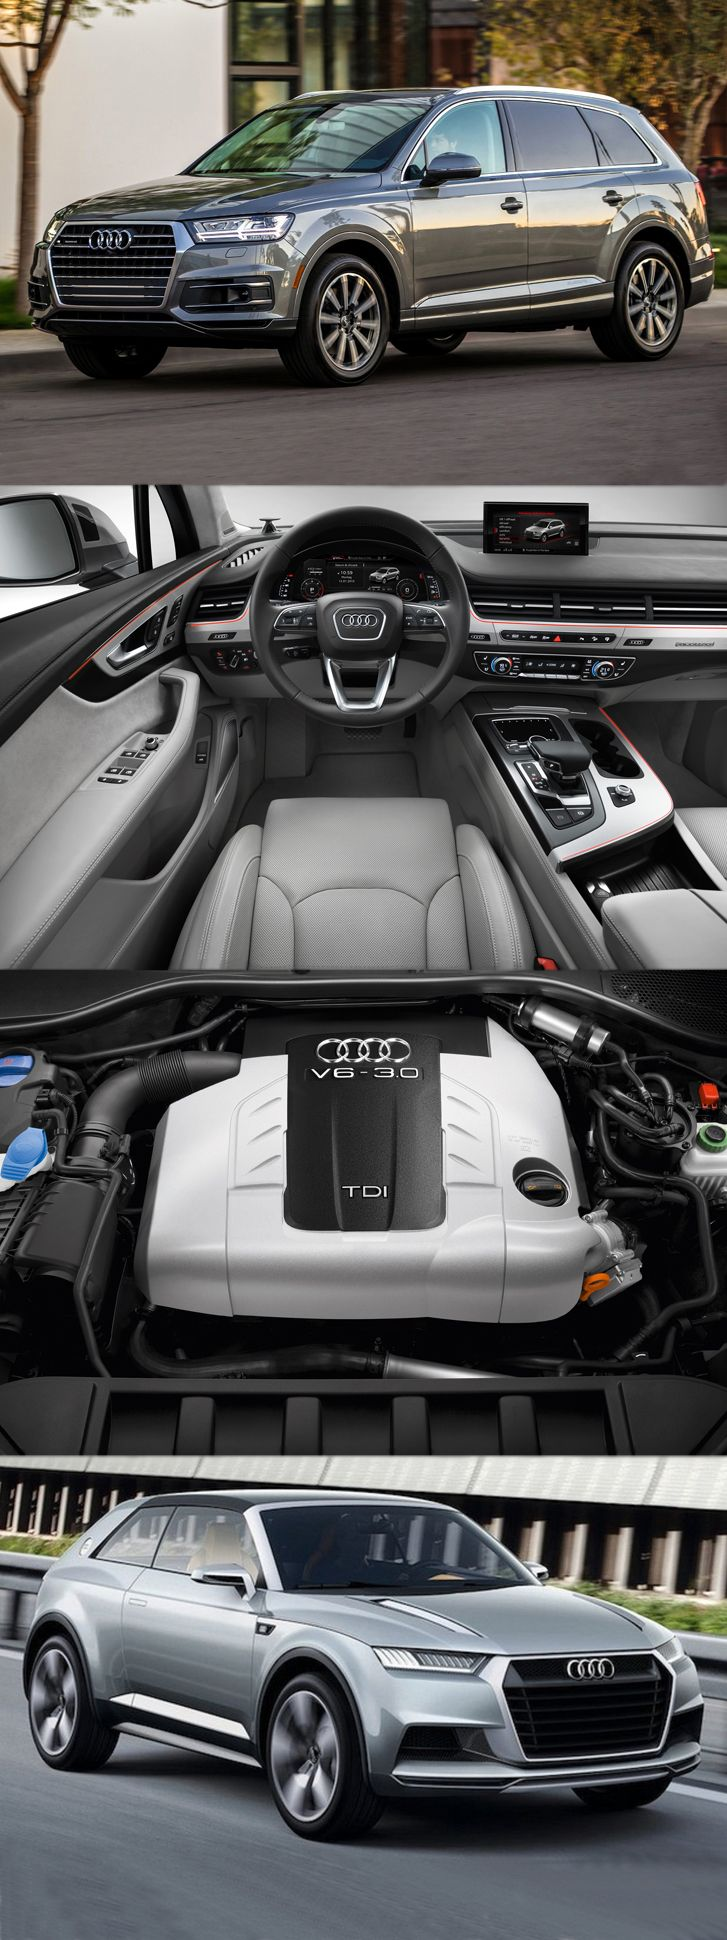 Why Audi Q7 Engines Are A Good idea? Further detail at: http://www.audienginesandgearboxes.co.uk/audi-q7-engines-good-idea/ #AudiQ7 #Engines #DieselEngine #AudiQ7Engines #SQ7